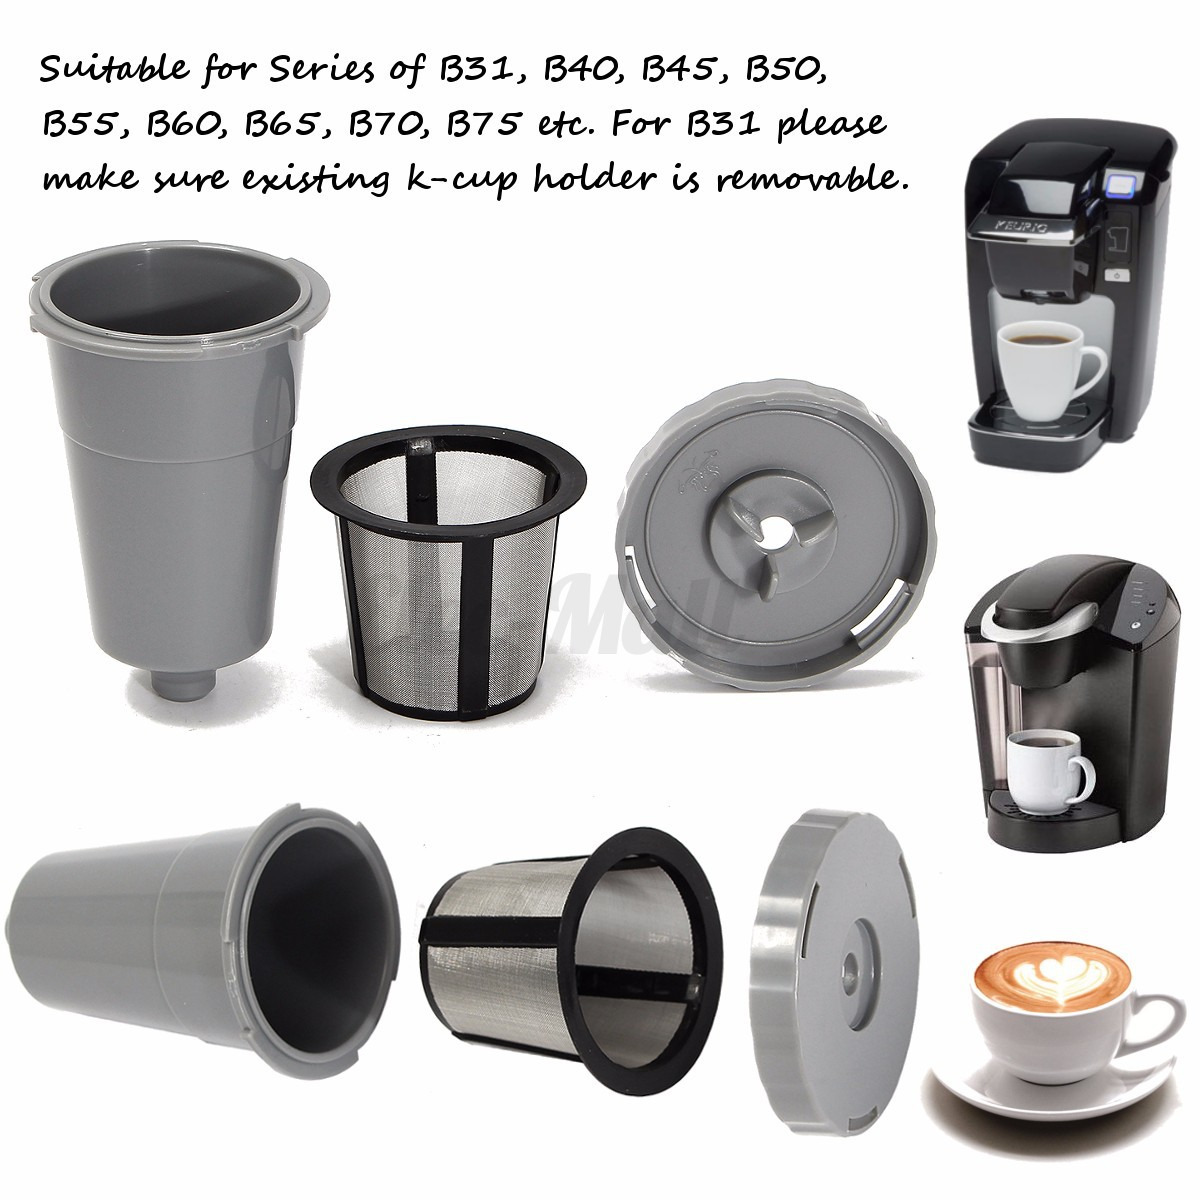 1-8 Pack K-Cup Reusable Coffee Filter Suit Refillable Holder For Keurig Machines eBay